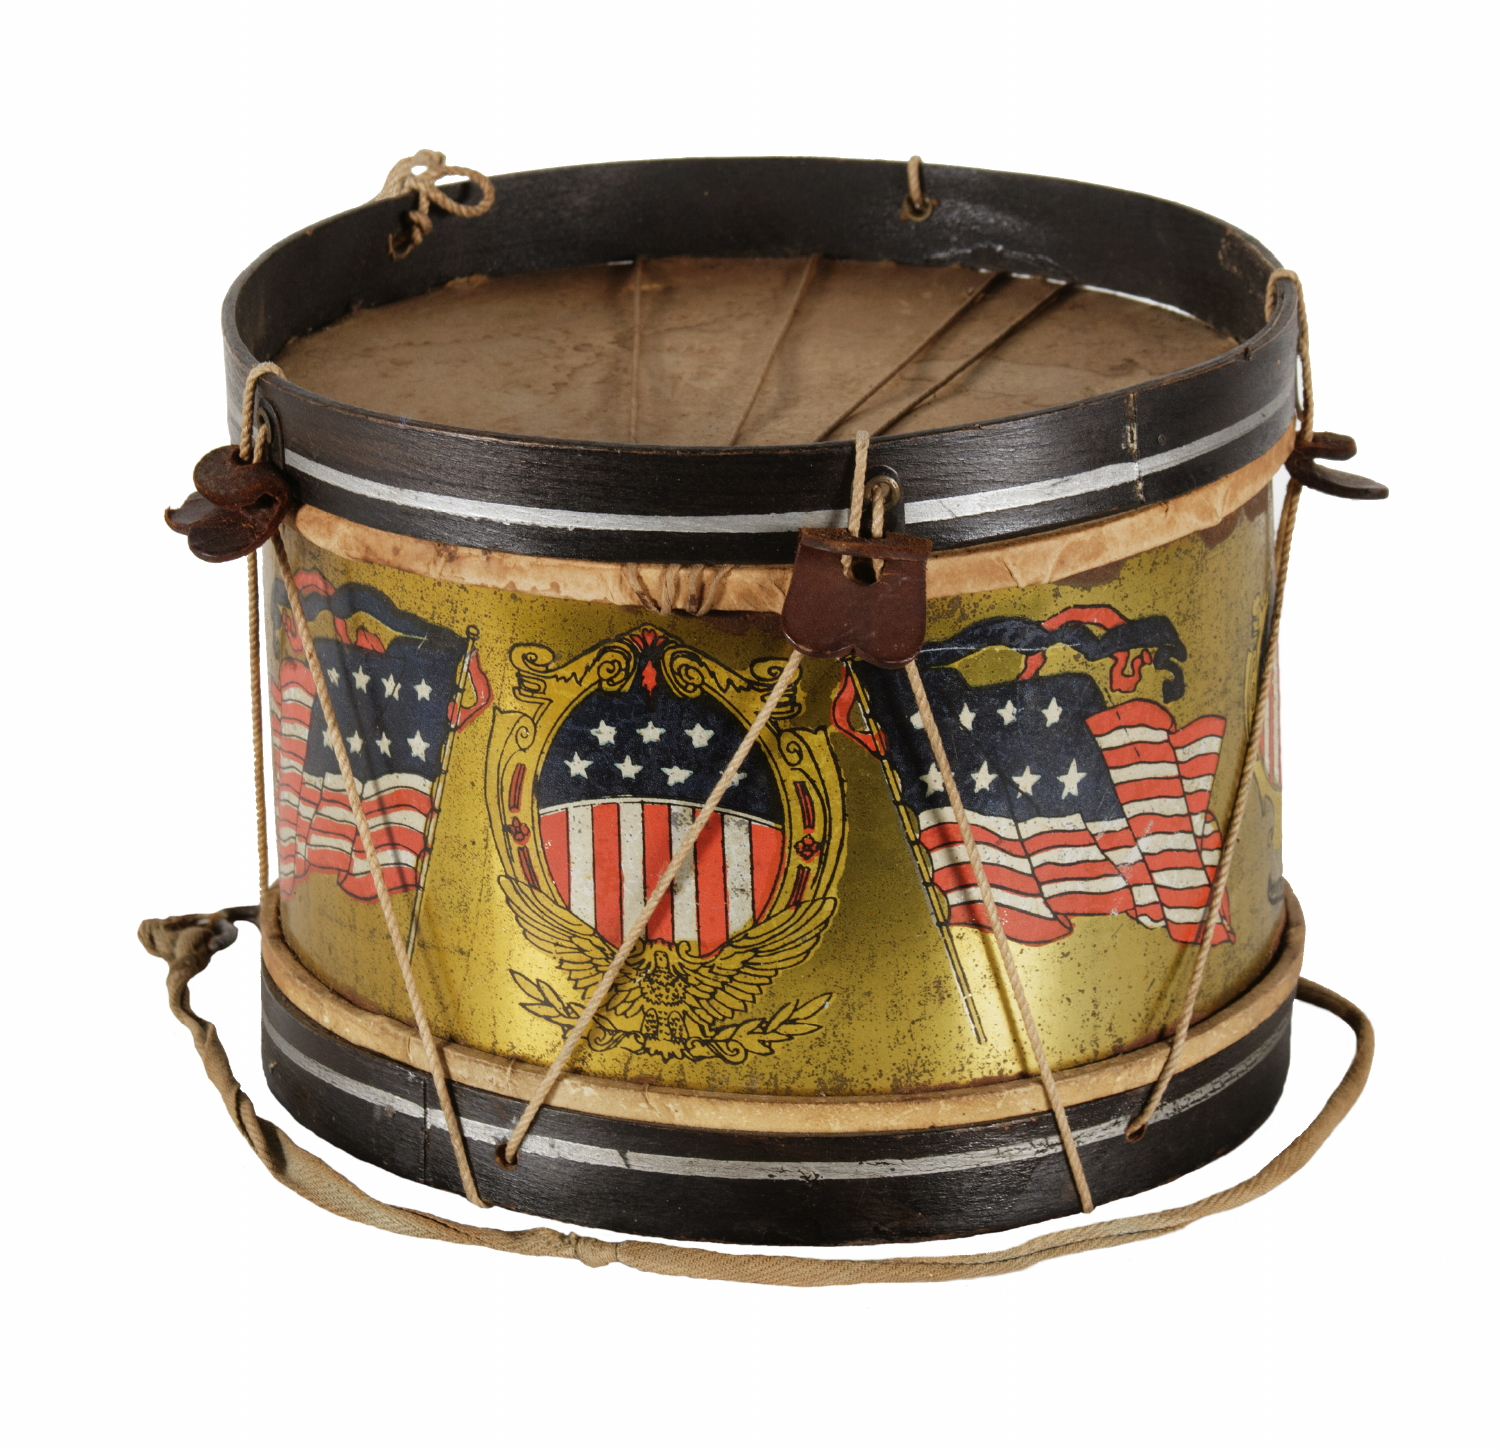 PATRIOTIC TOY DRUM WITH OVAL SHIELDS AND AMERICAN FLAGS, SIGNED